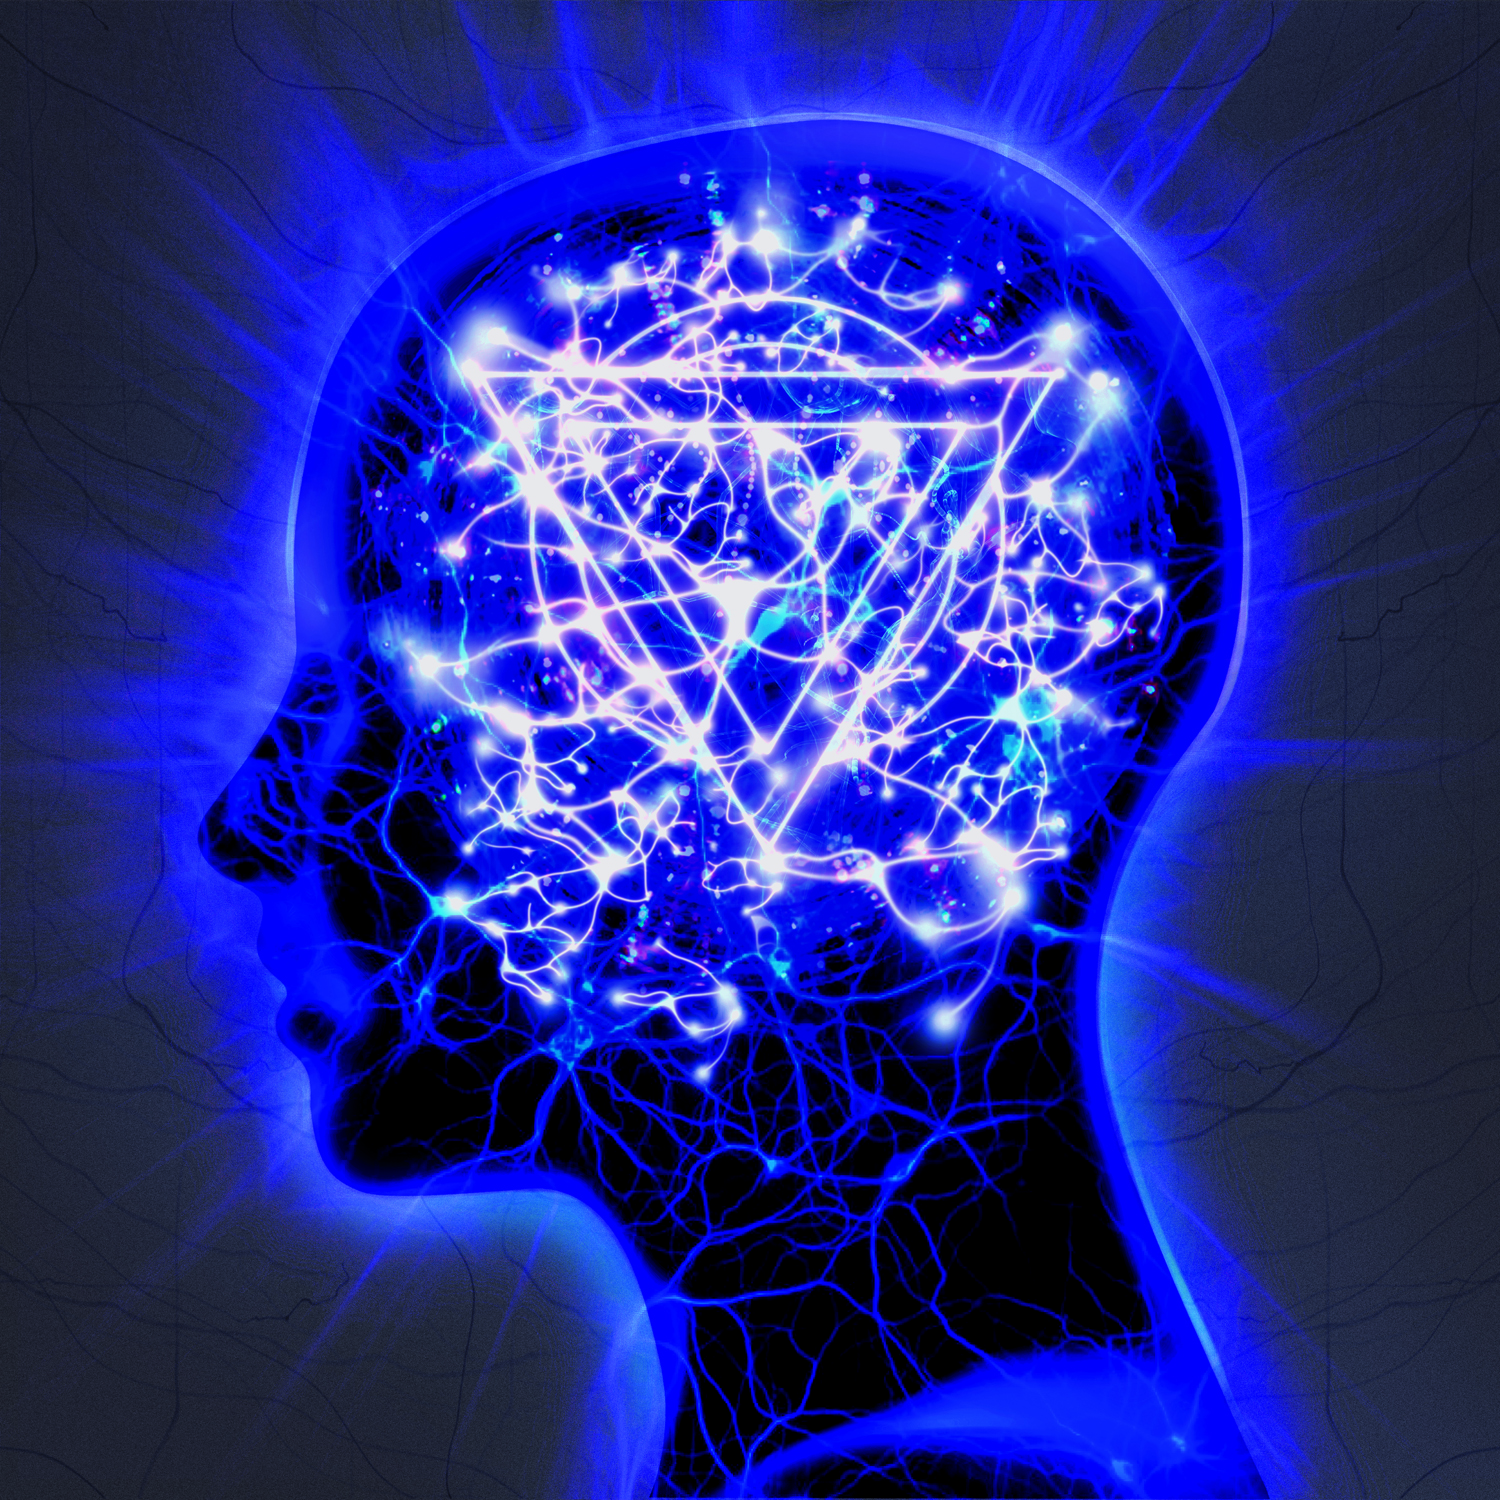 Enter-Shikari-The-Mindsweep-album-sleeve..jpg